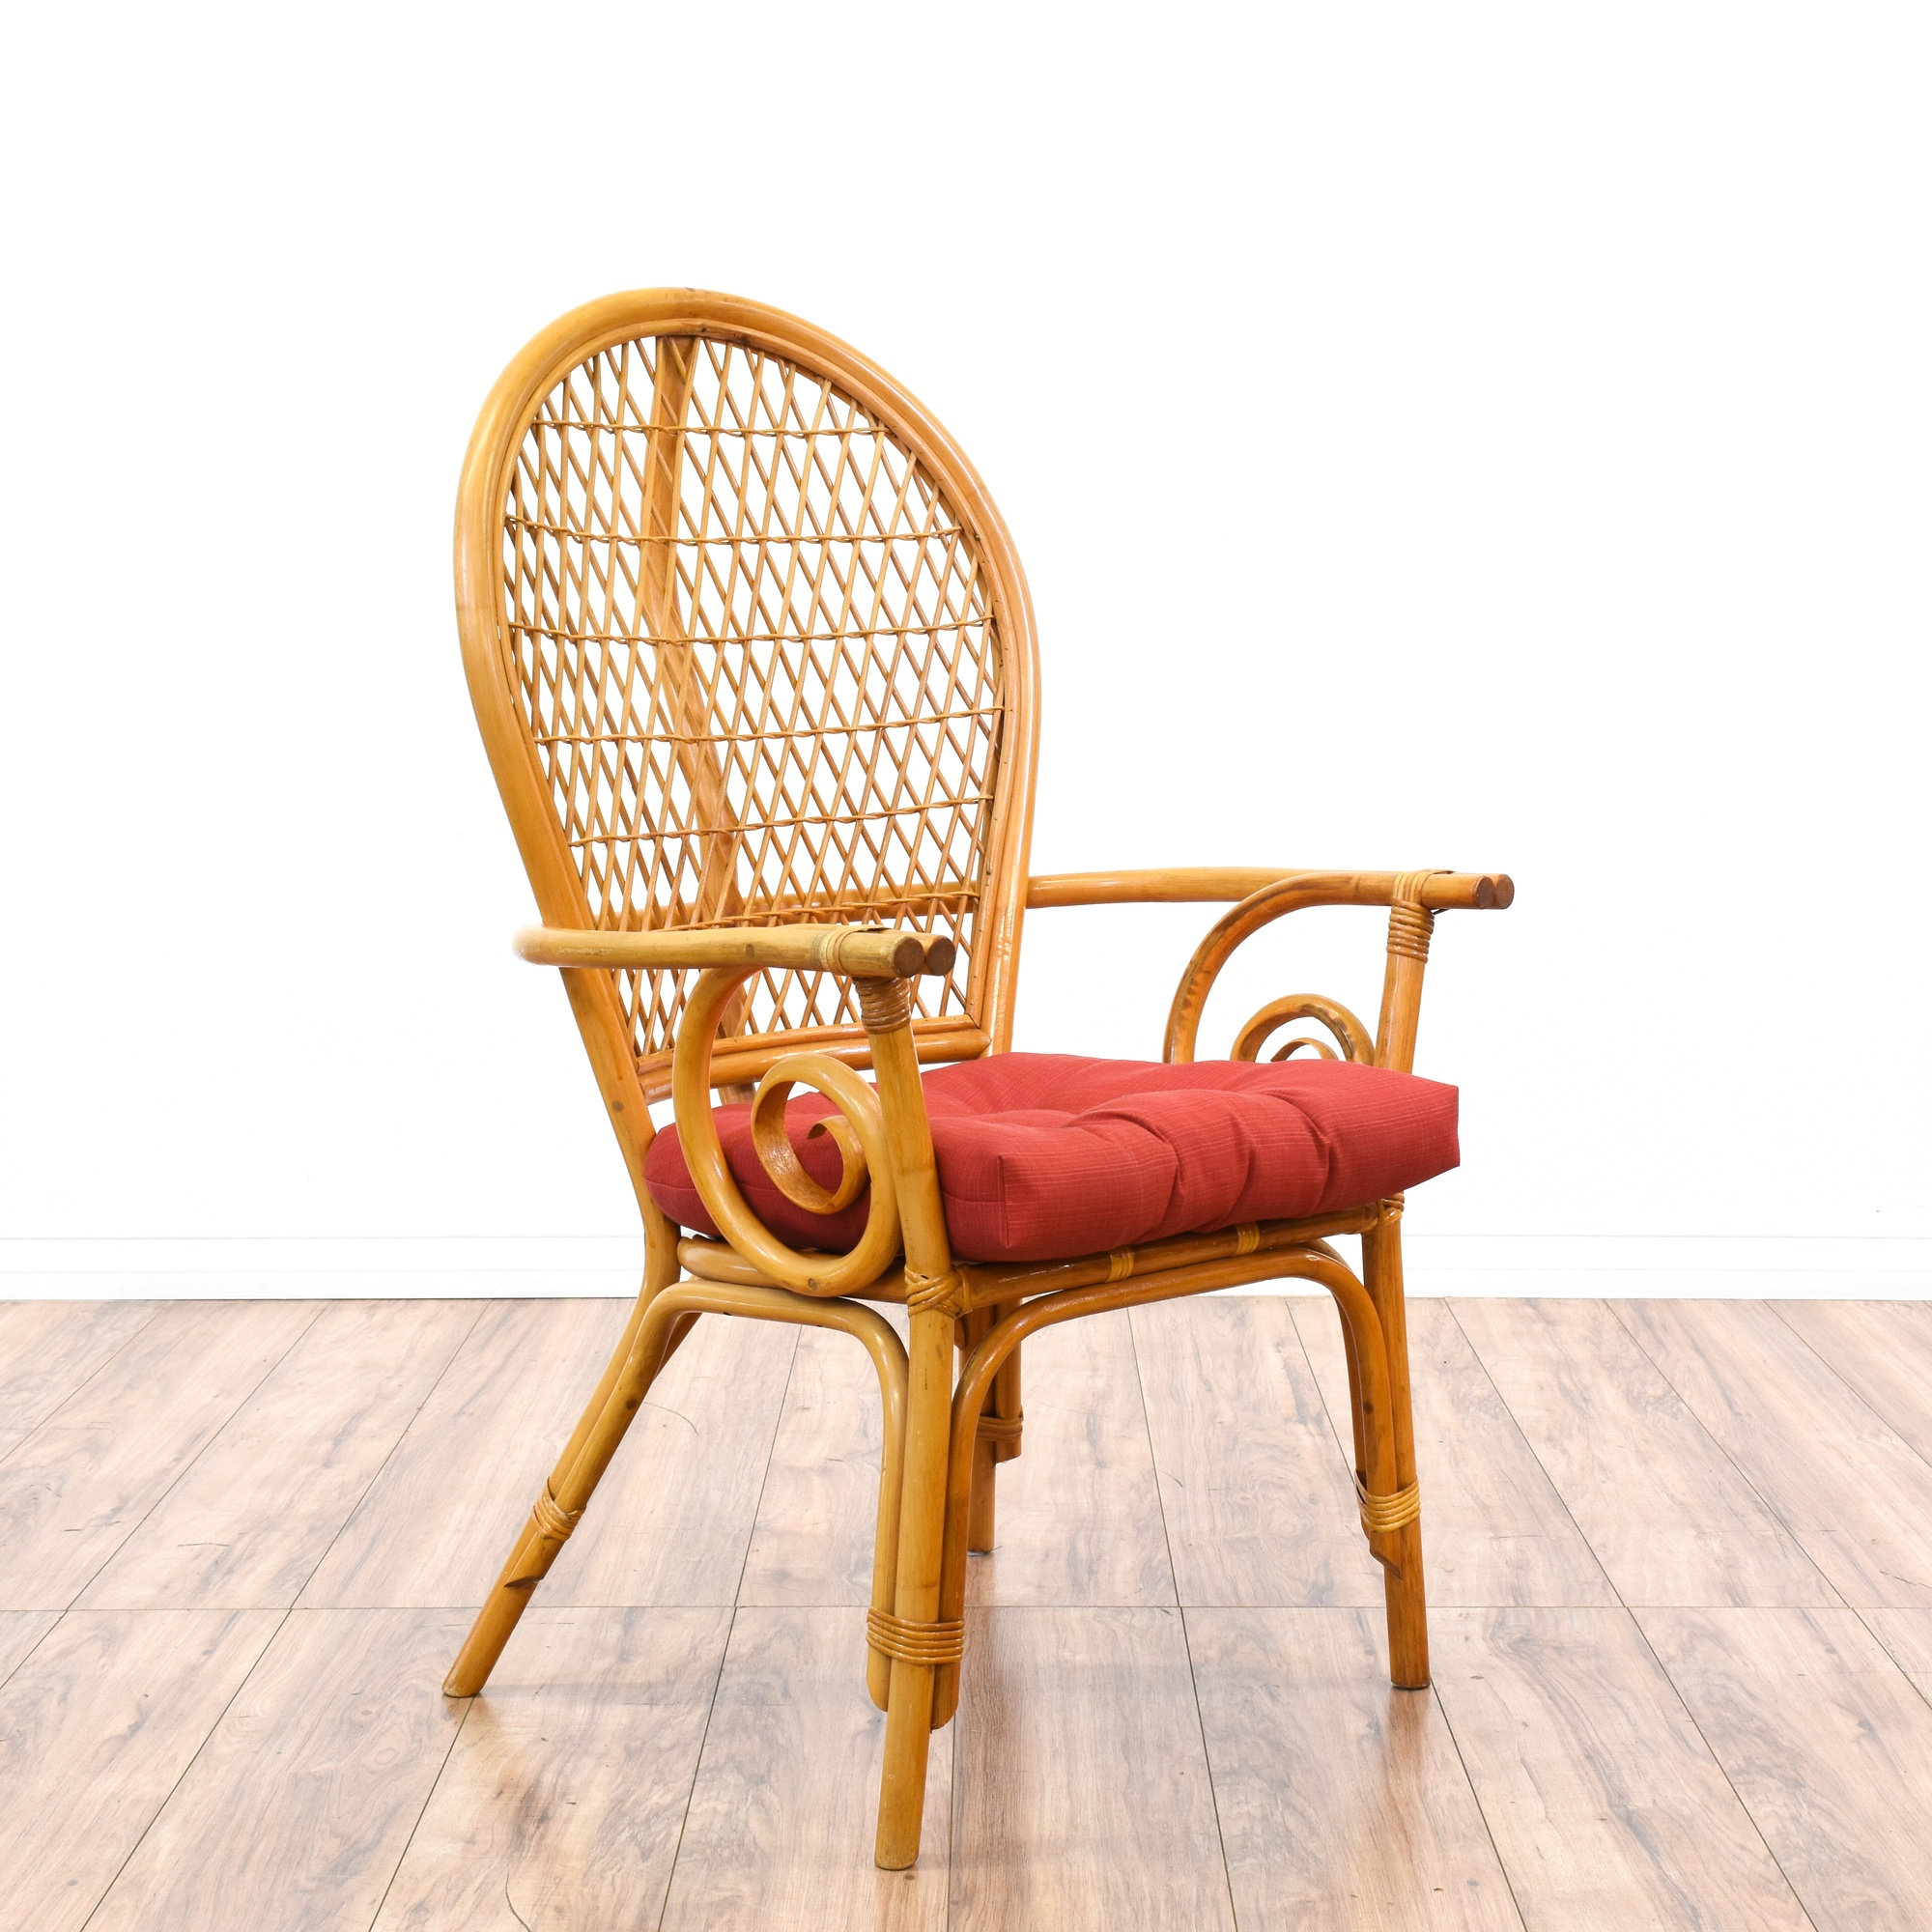 Dining Room Chairs San Diego: Set Of 4 Tropical Lattice Rattan Dining Chairs